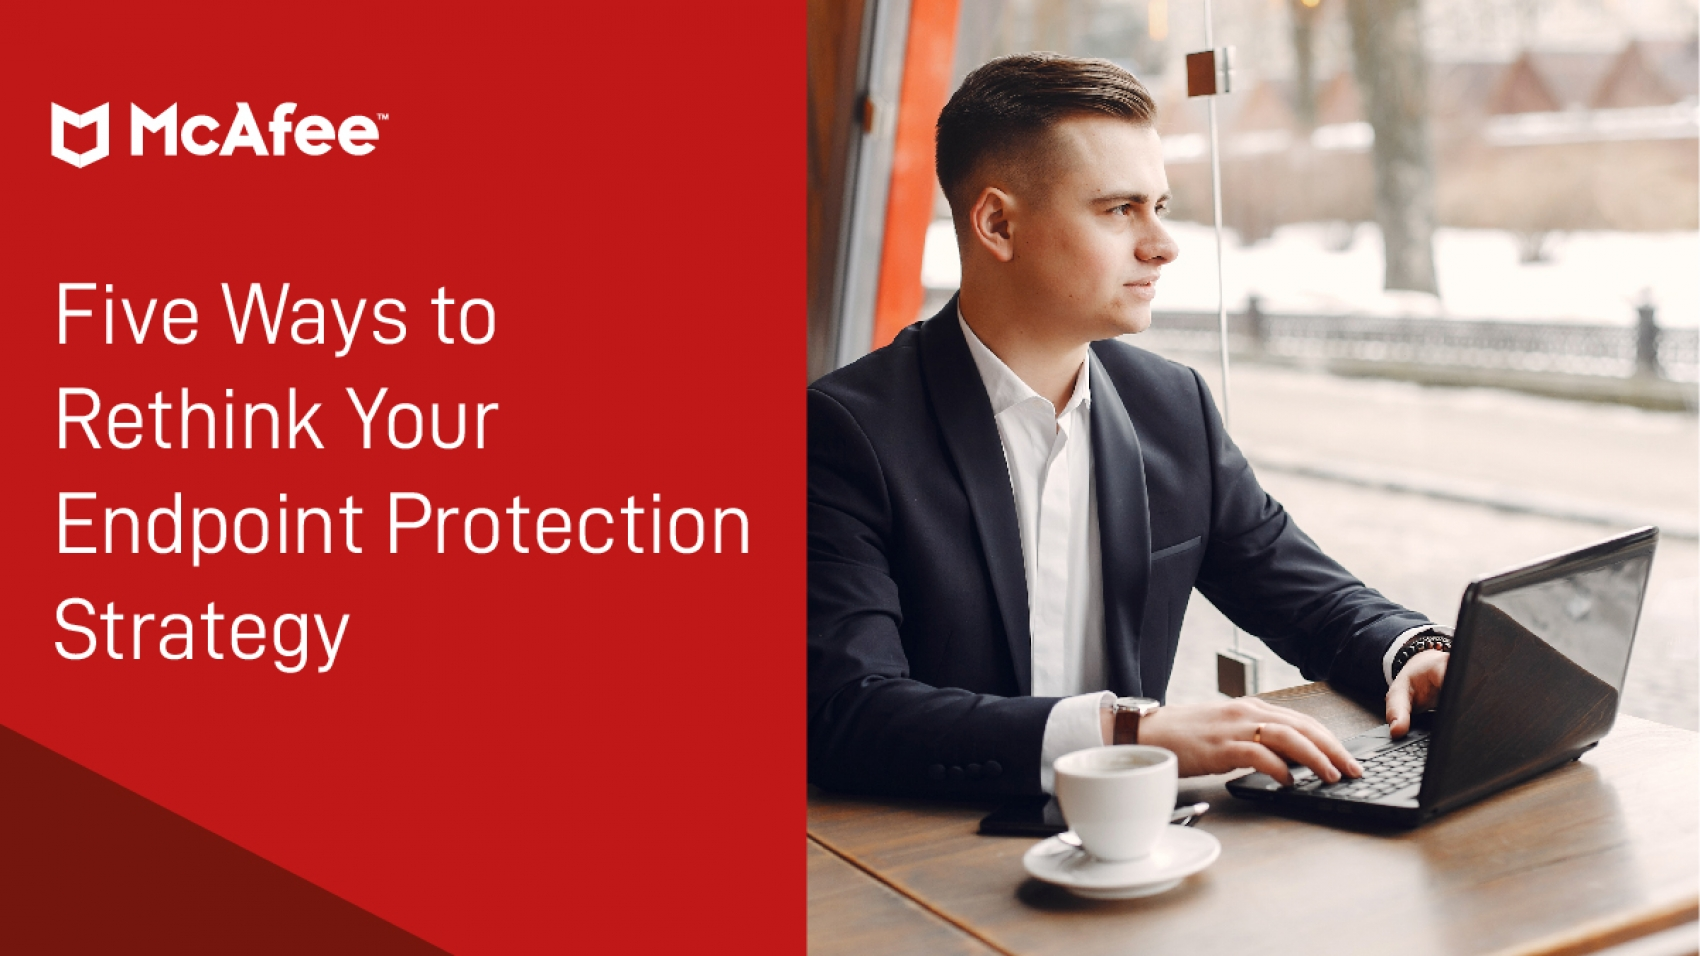 mcafee five ways to rethink your endpoint protection strategy